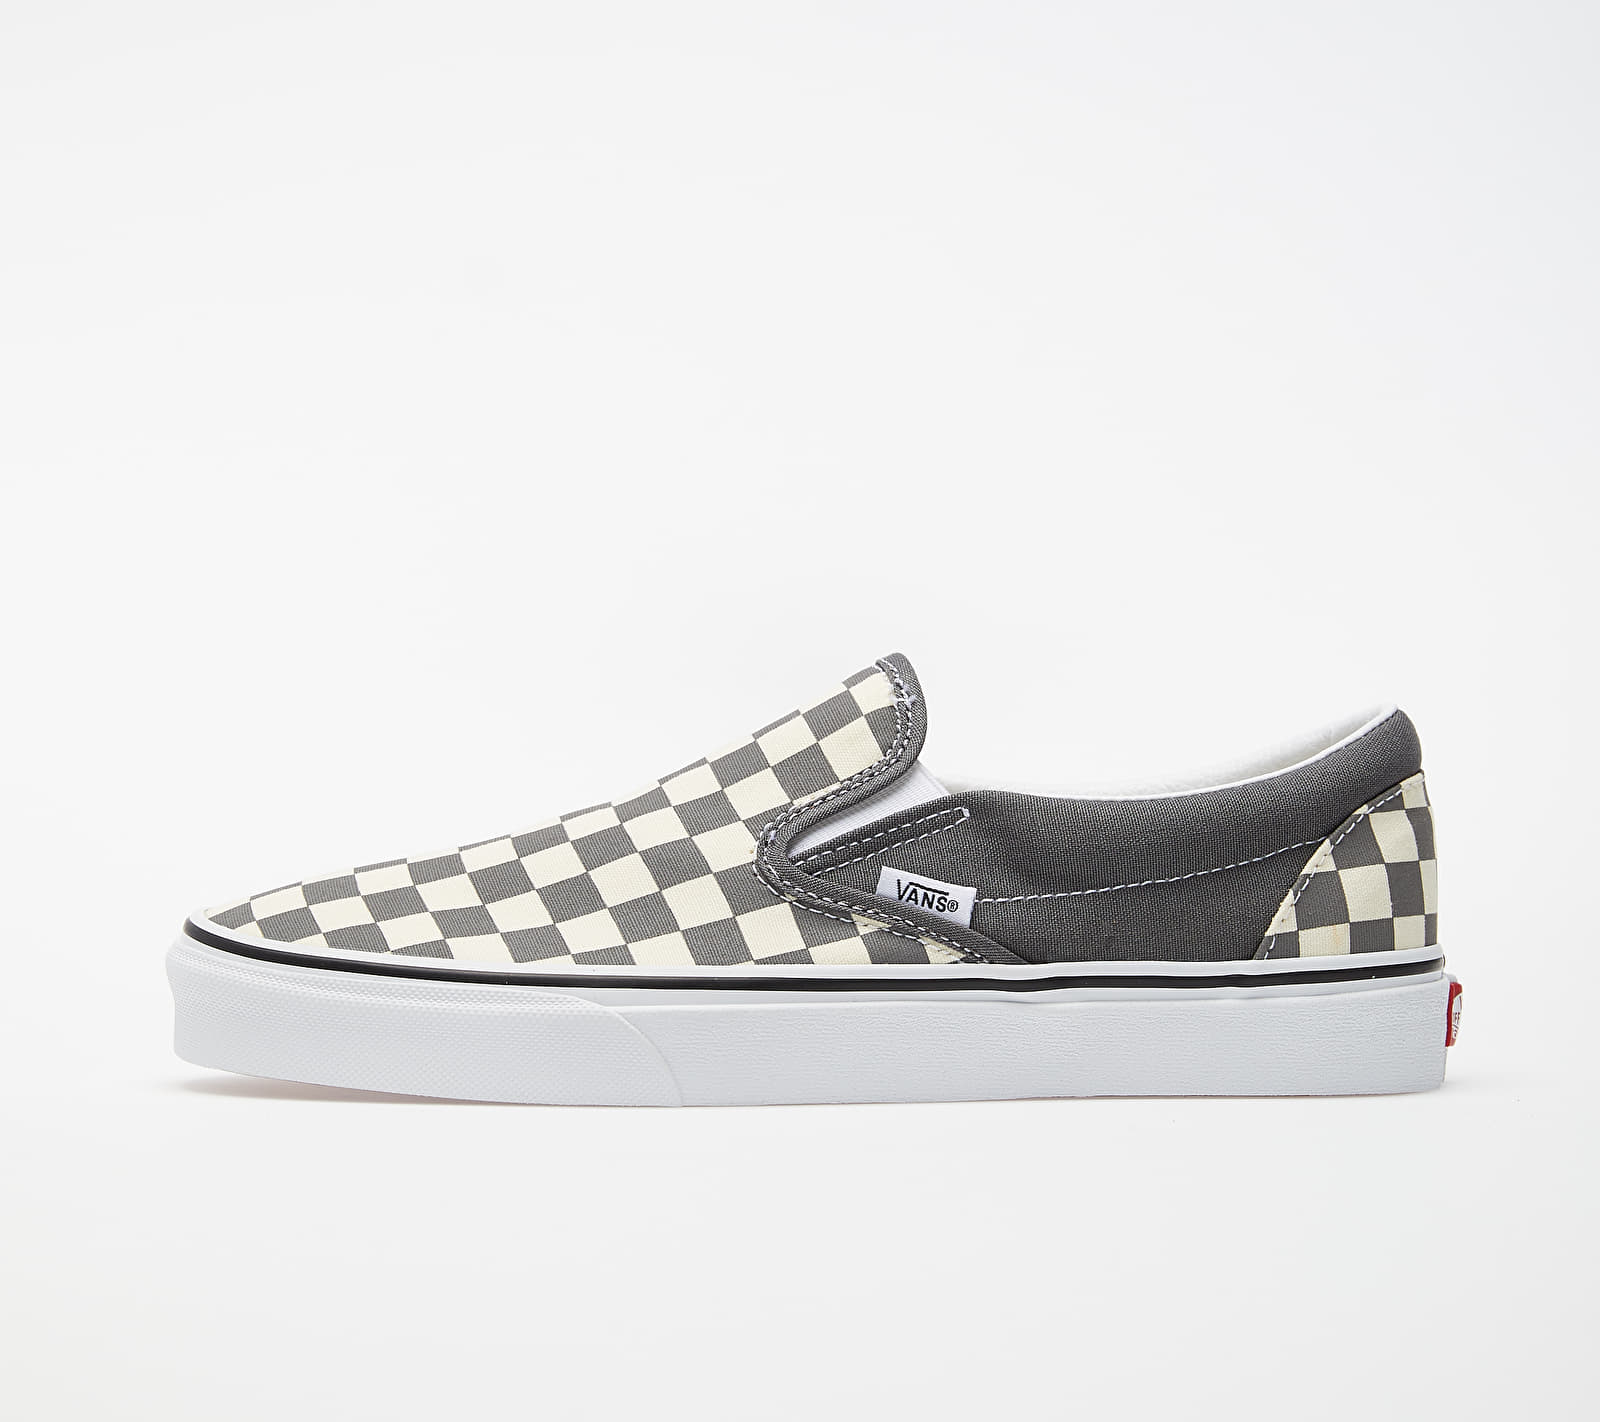 Vans Classic Slip-On (Checkerboard) Pewter/ True White VN0A4BV3TB51